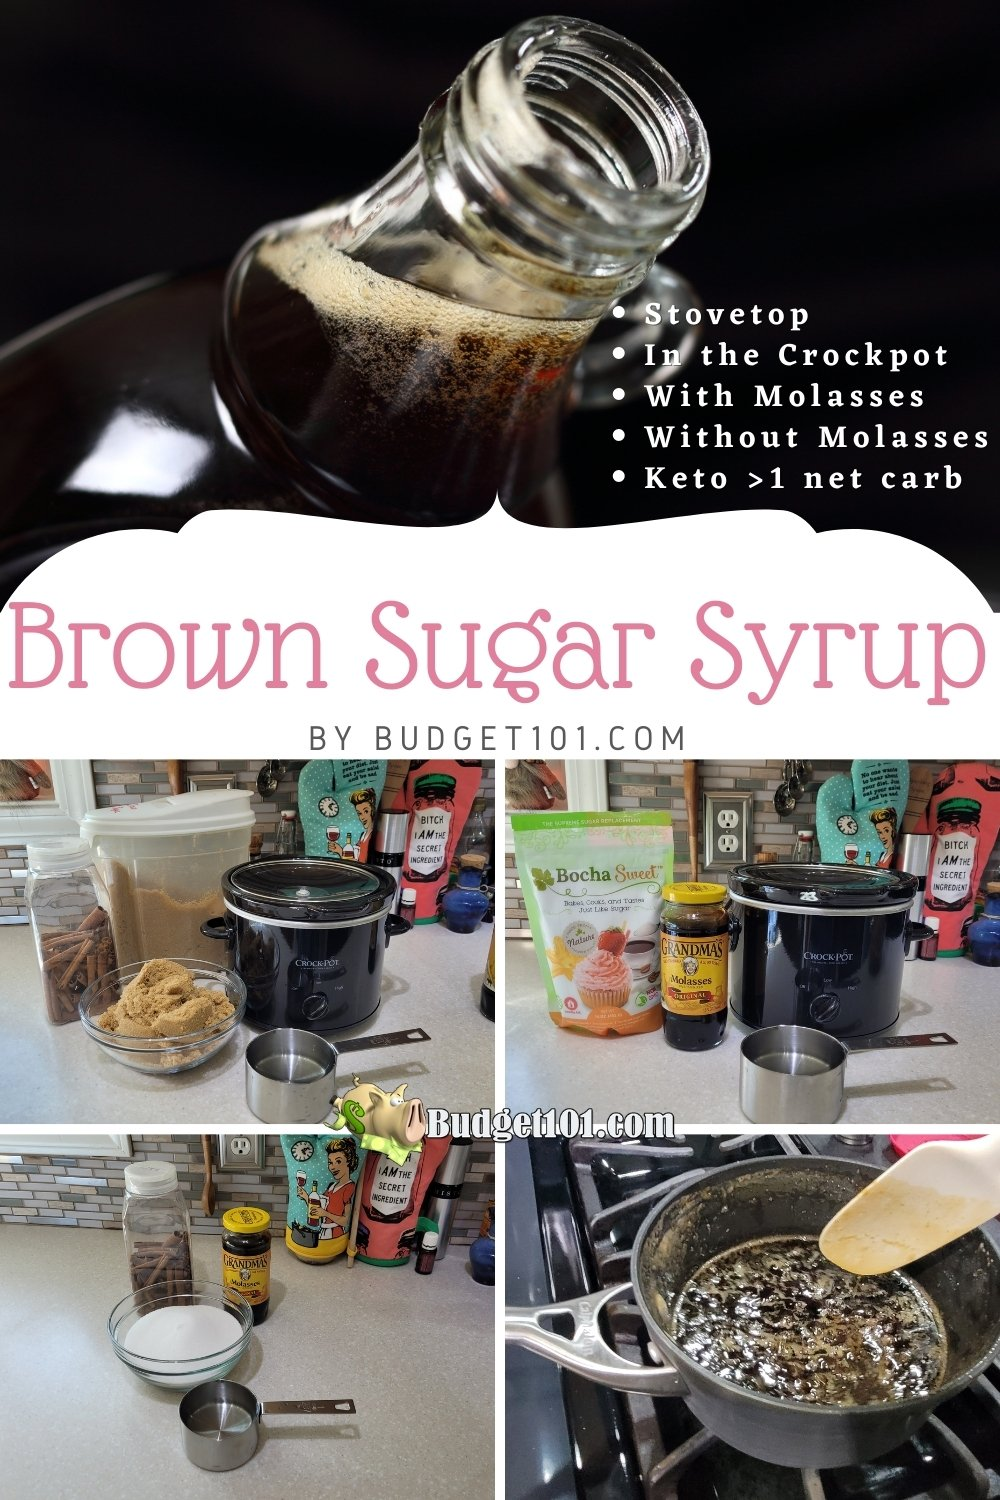 brown sugar syrup recipes - how to make it on the stovetop, crockpot, with molasses, without molasses, with spices, as well as a keto brown sugar syrup! #MakeYourOwn #homemade #brownsugarsyrup #keto #budget101 #DirtCheap